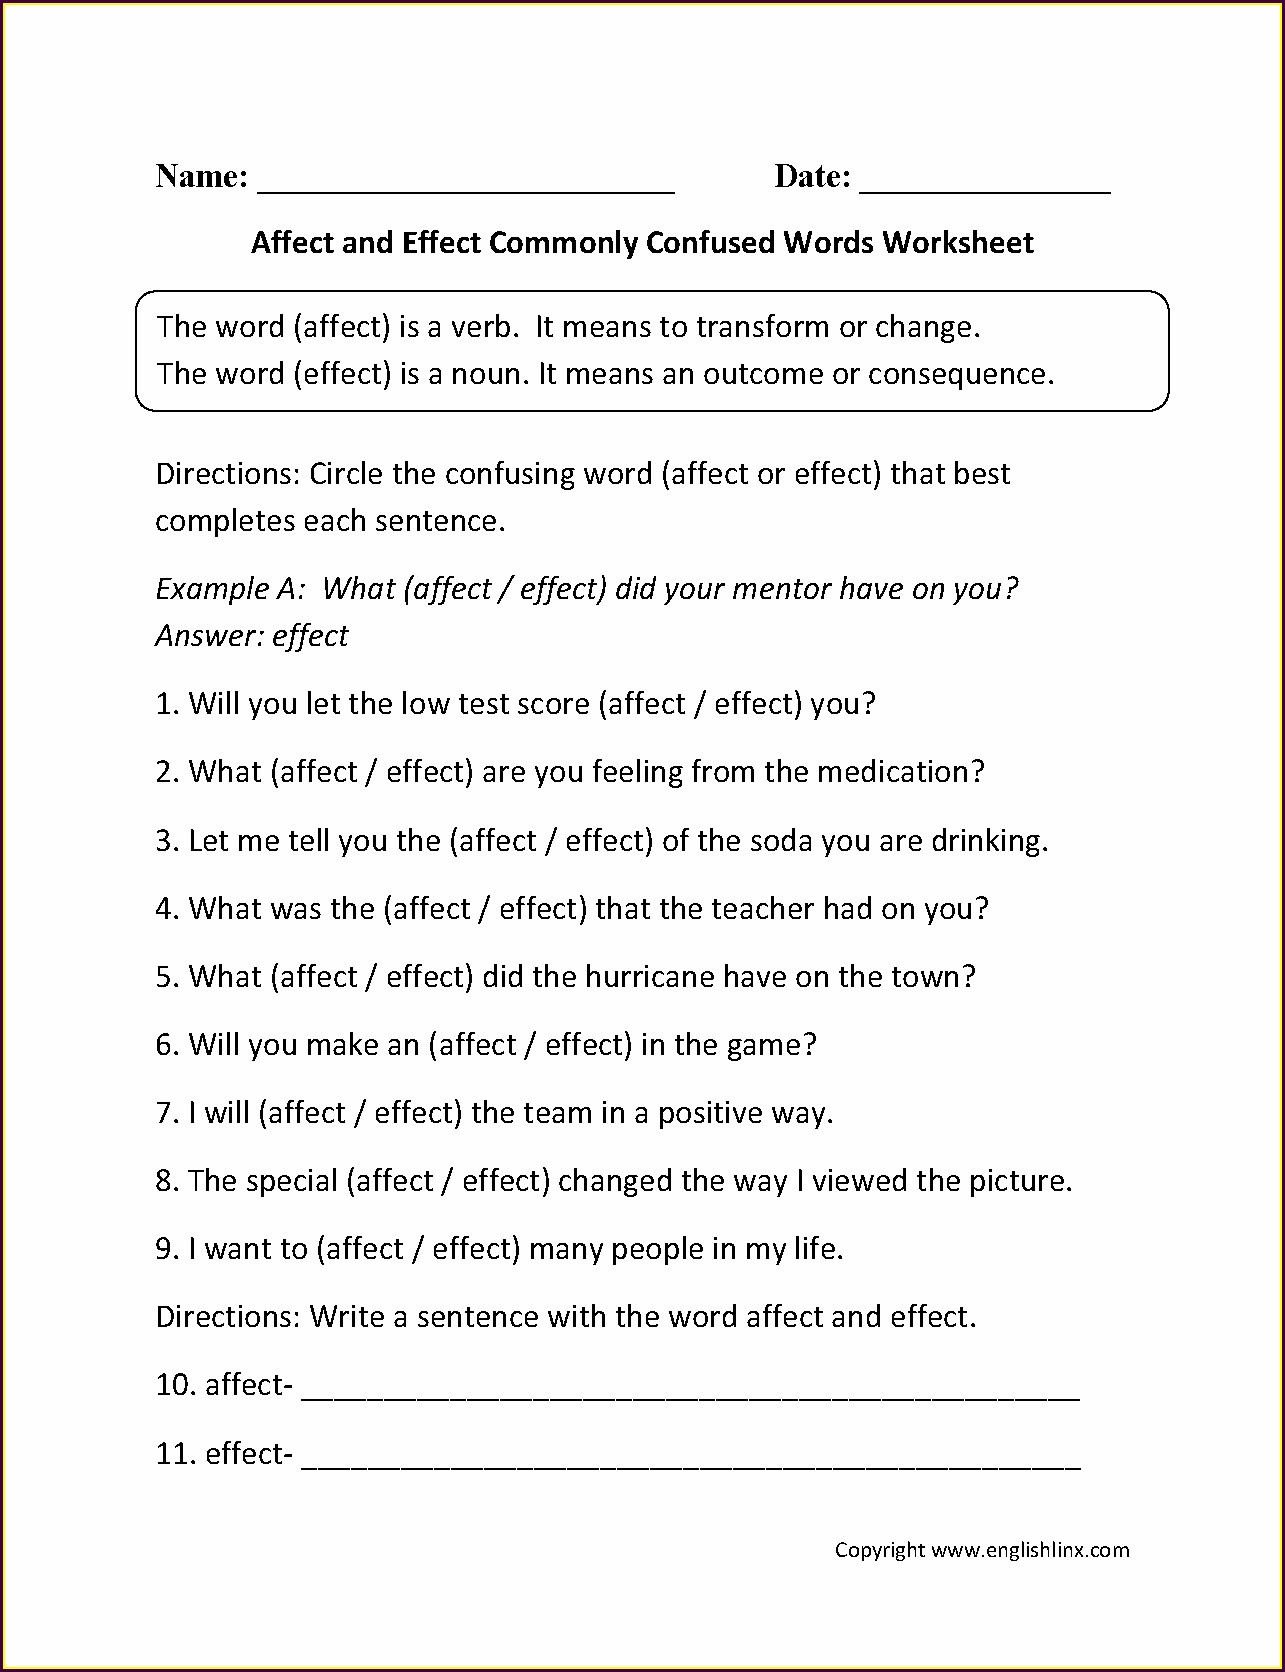 Commonly Confused Words Worksheet 1 Answer Key